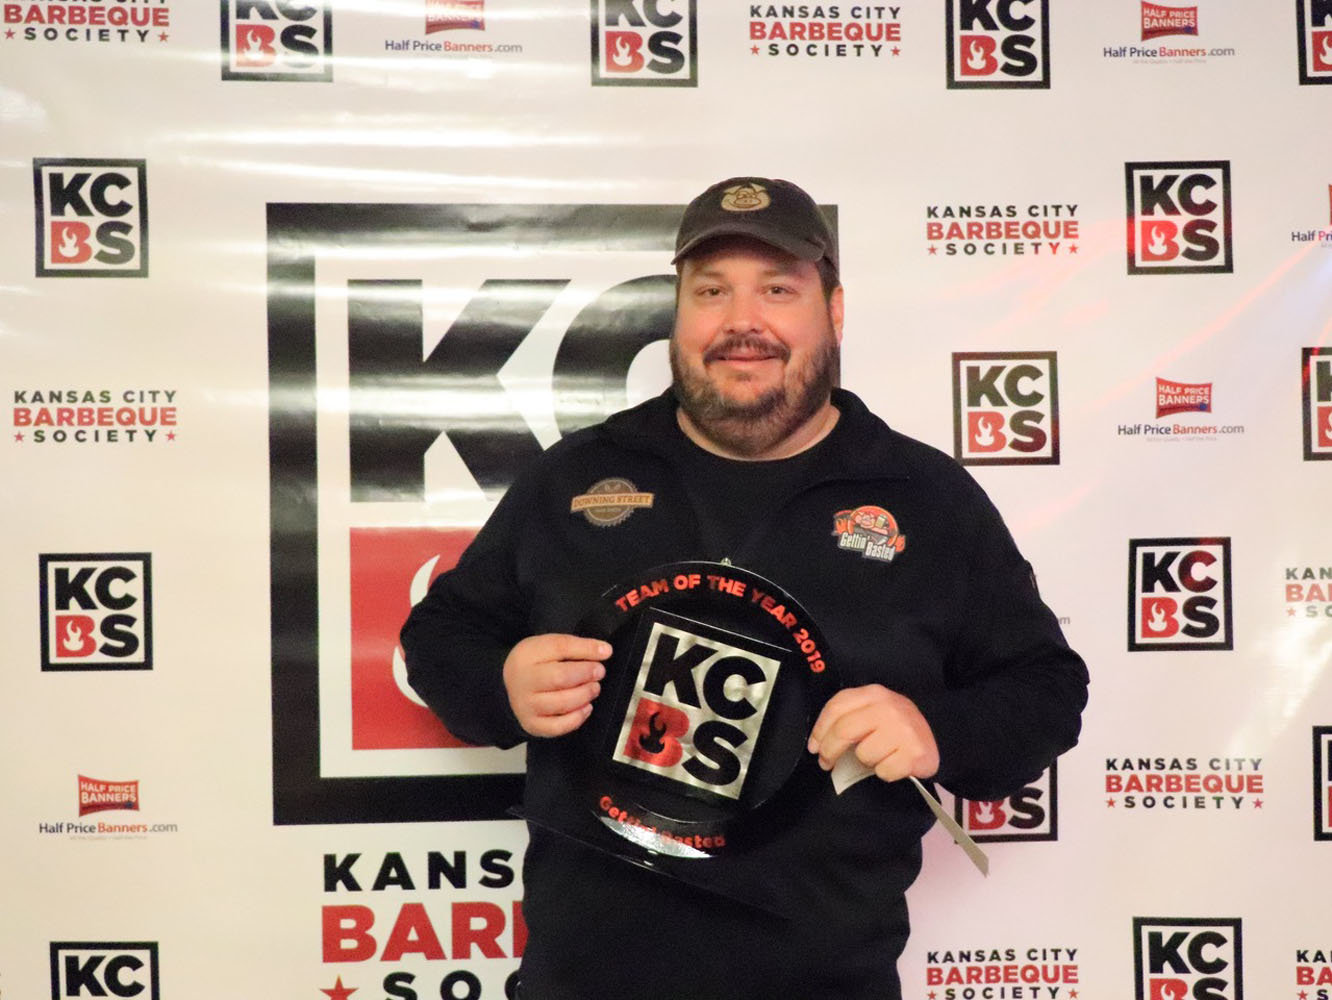 BEST BBQ